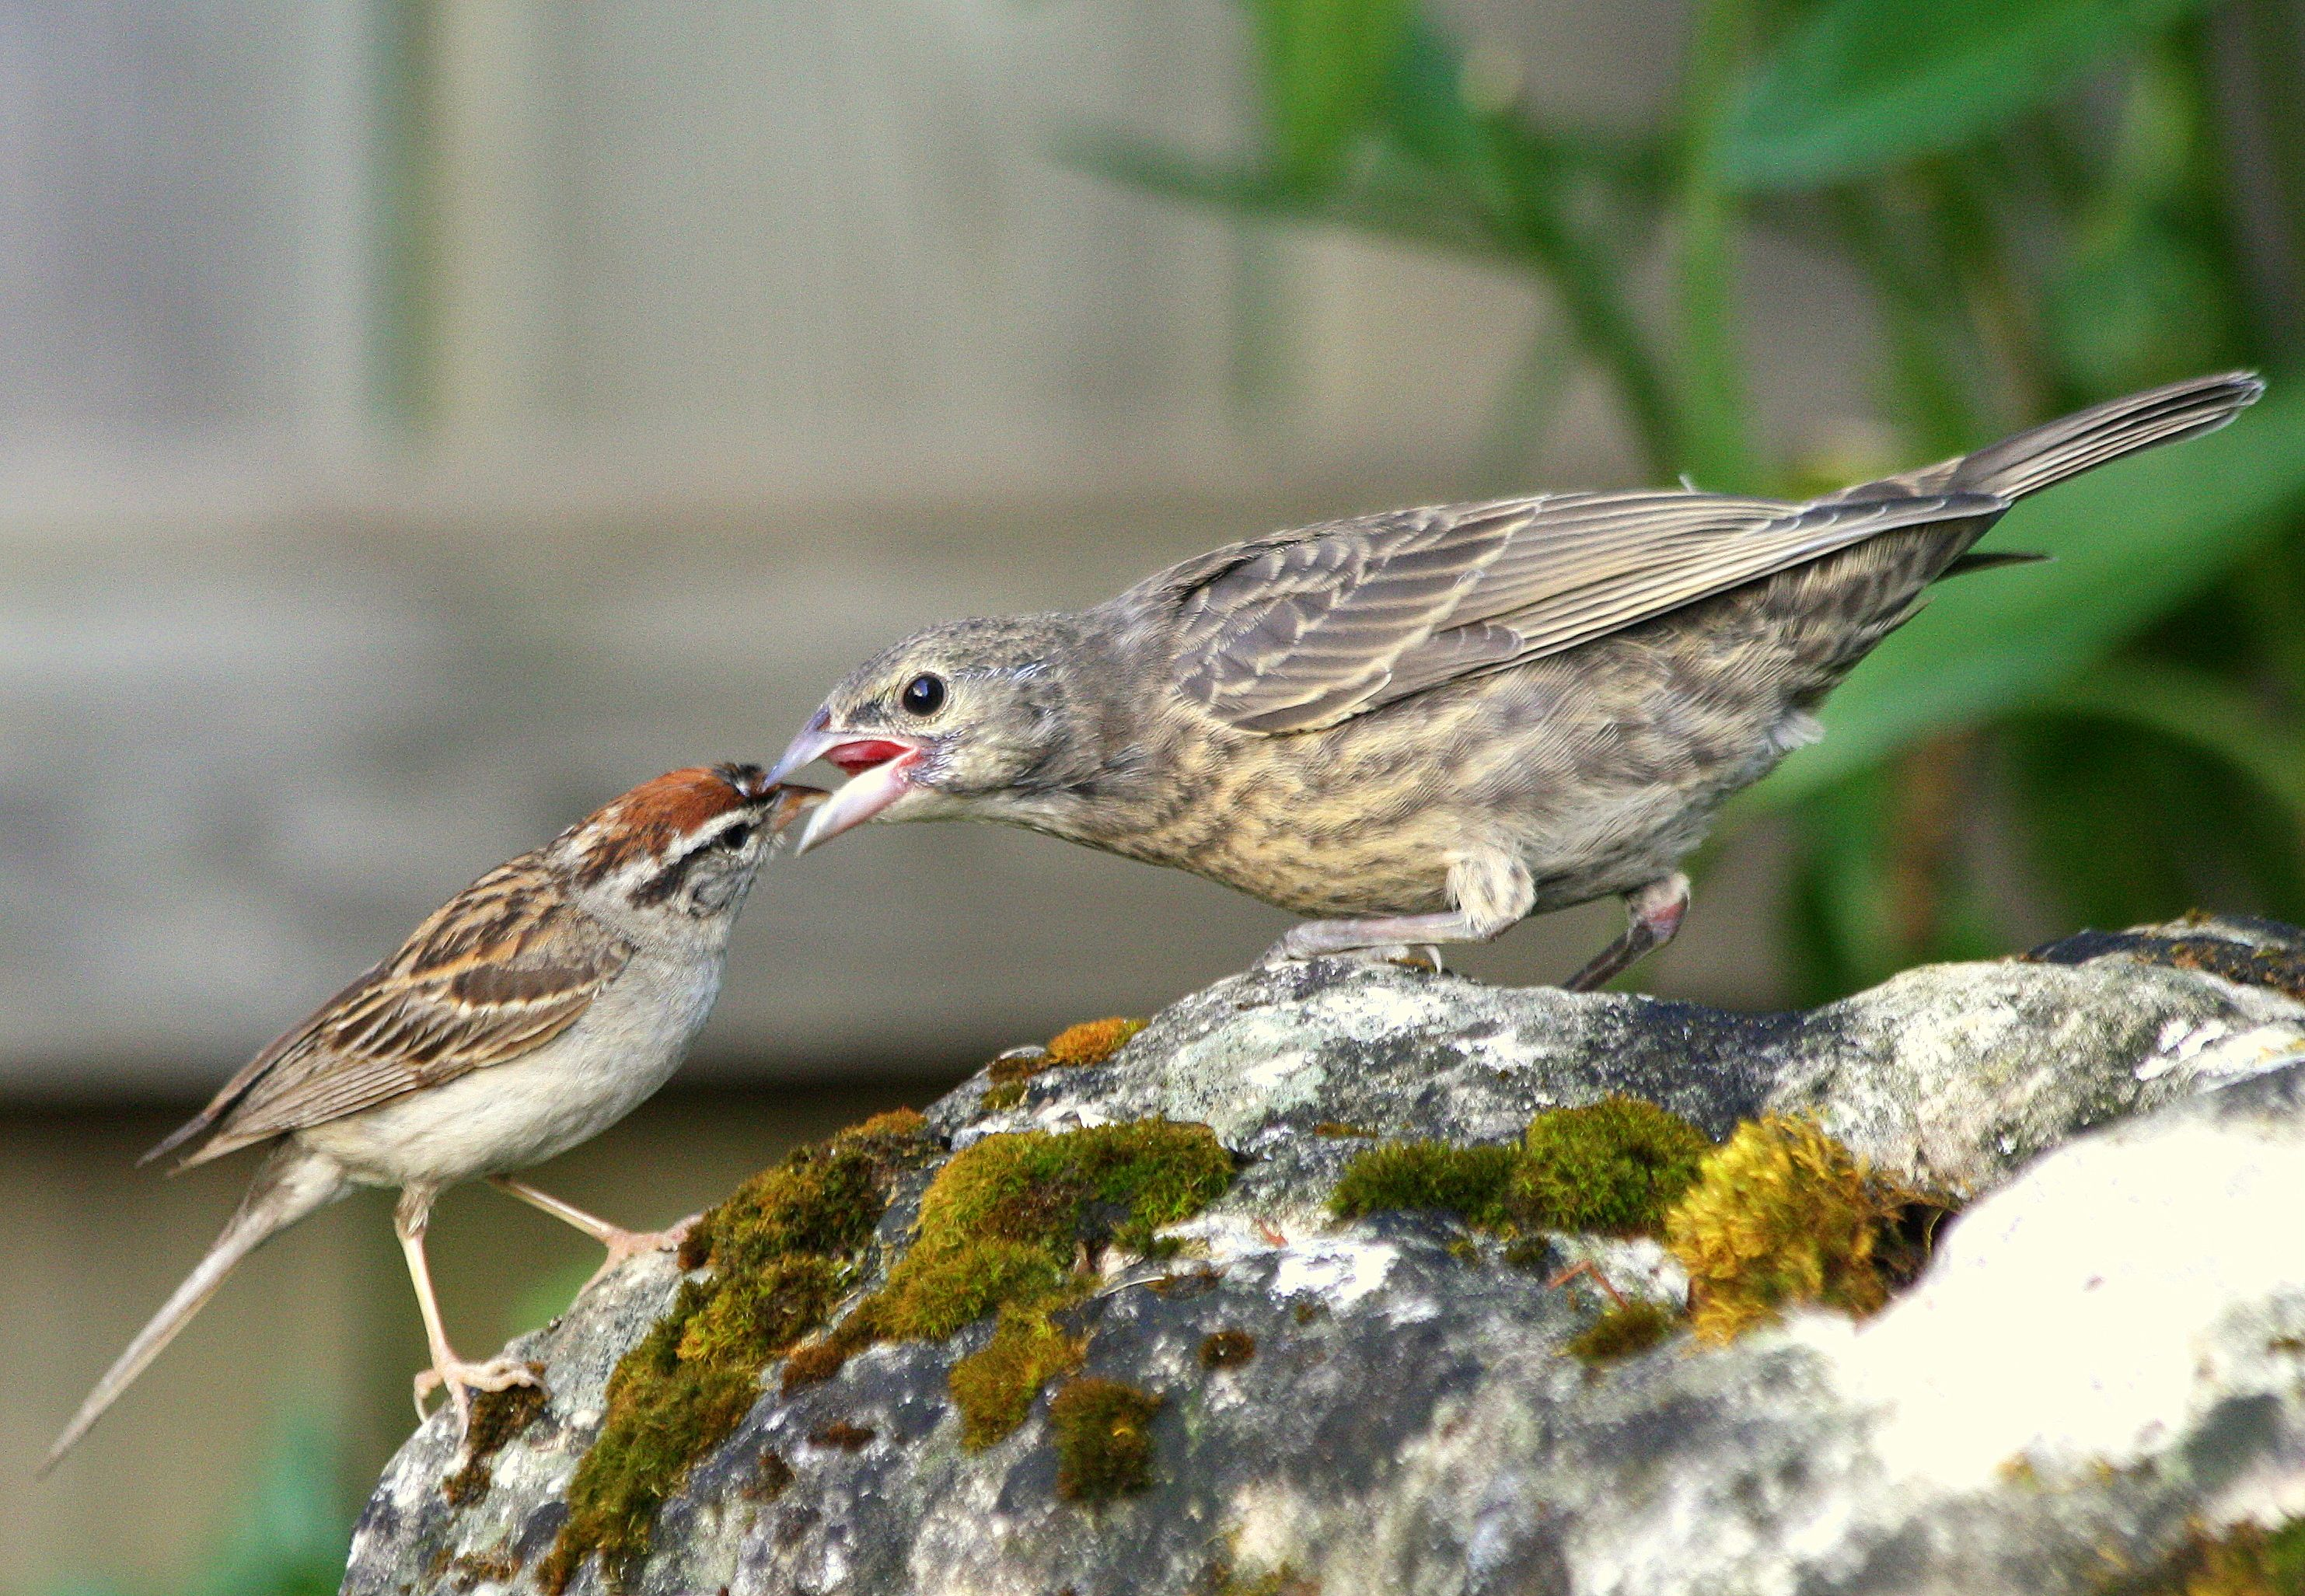 Raising Of Sparrow Pictures : Pin by MiniMade on My Photos  Pinterest